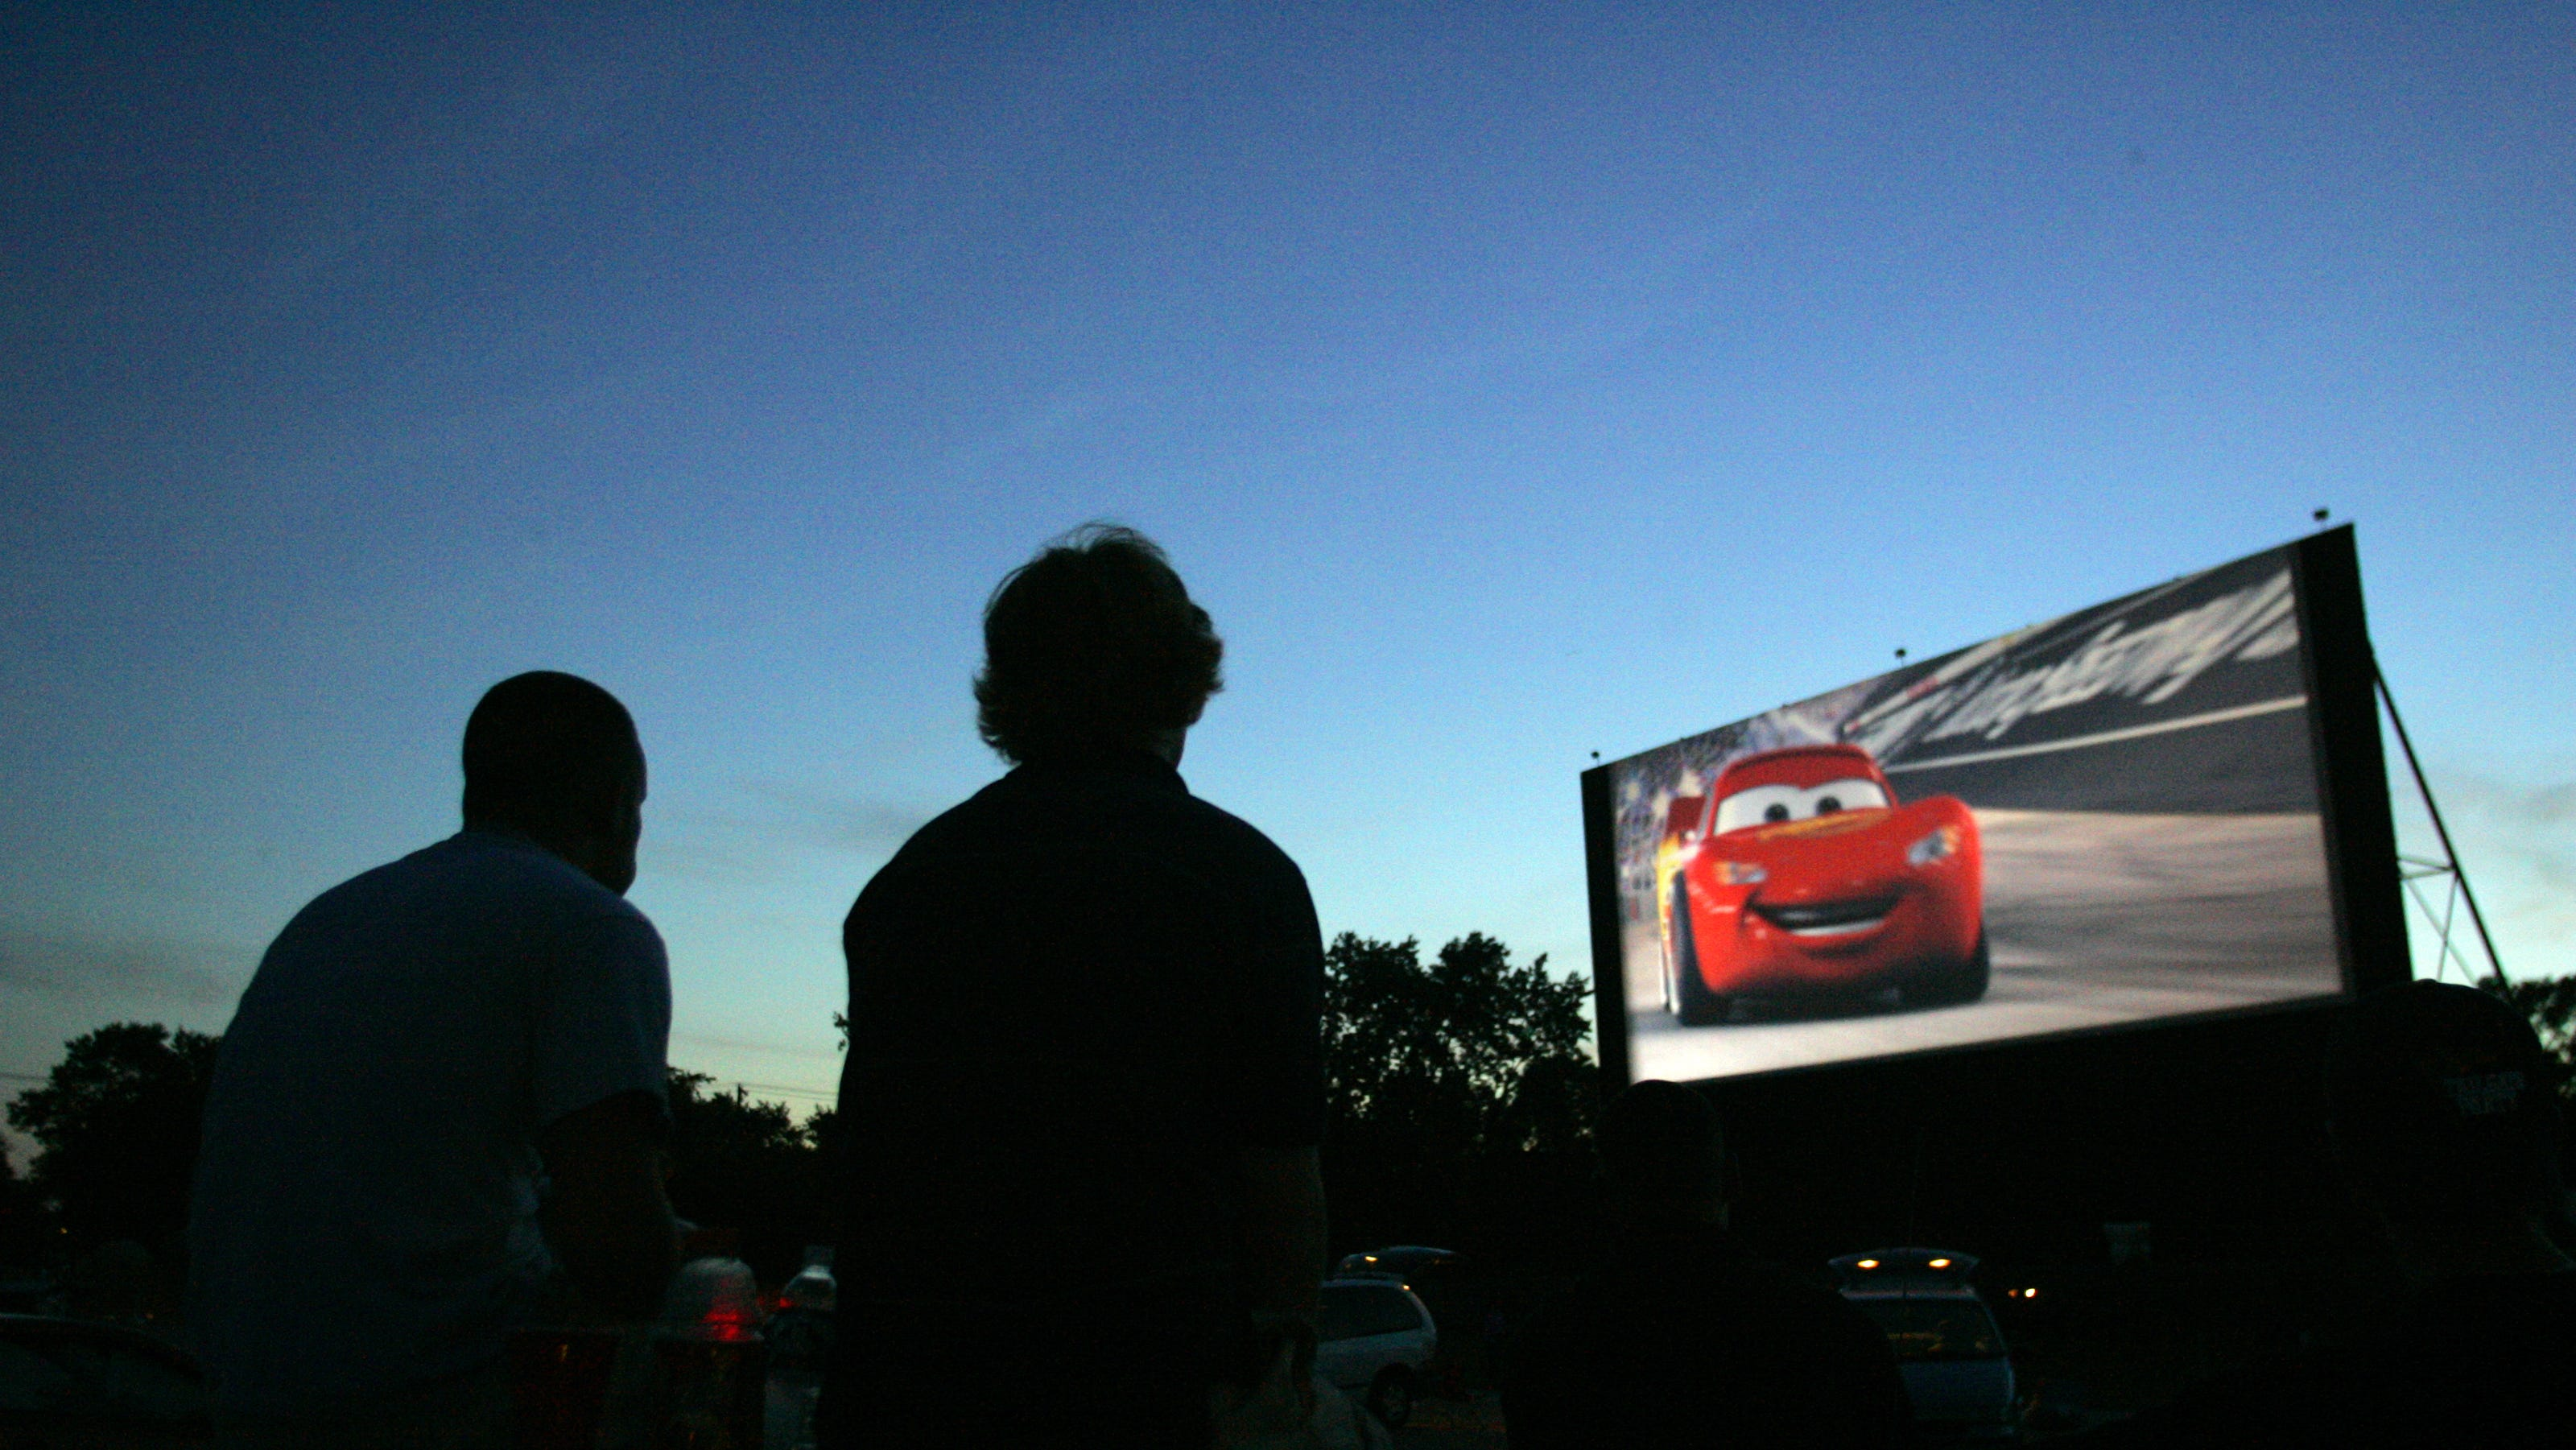 Tibbs Drive In Movies New Owners Will Be In Charge Of The Theater